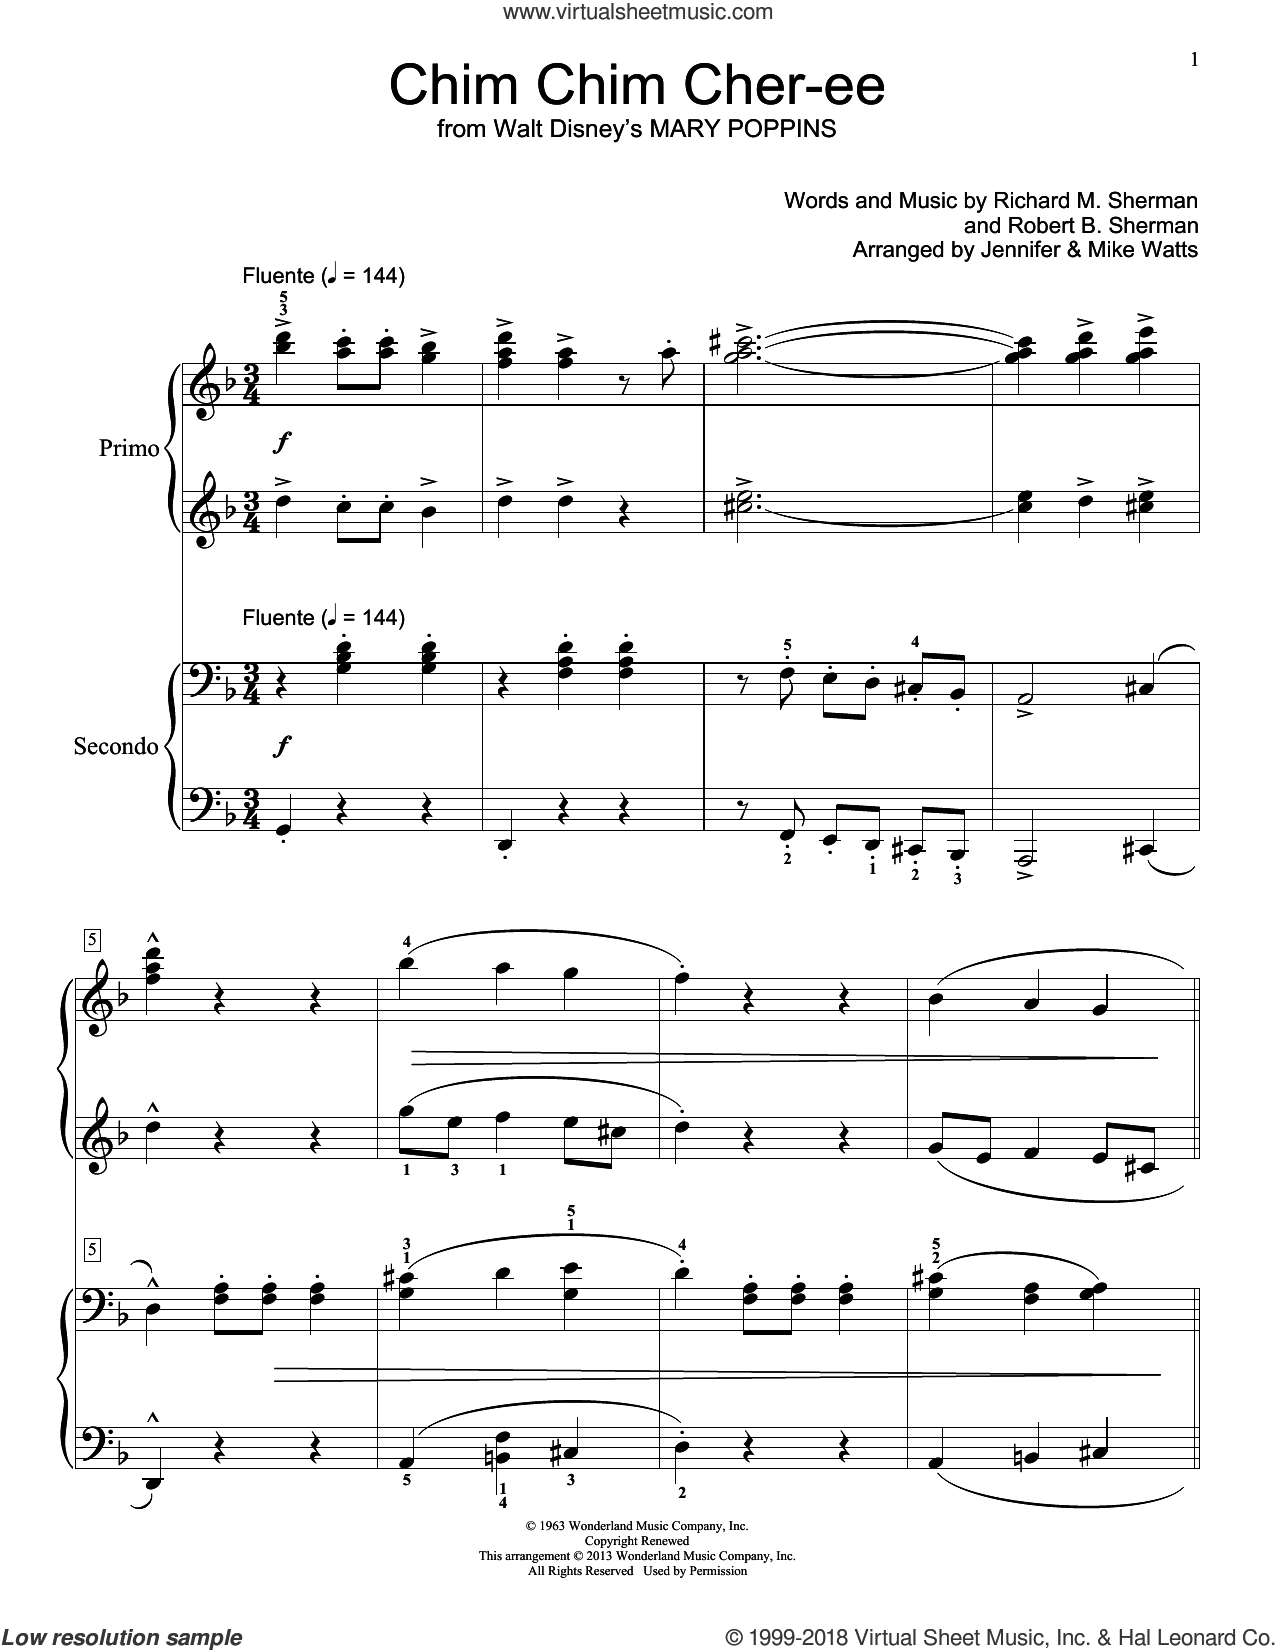 Chim Chim Cher-ee sheet music for piano four hands by Robert B. Sherman and Richard M. Sherman, intermediate. Score Image Preview.